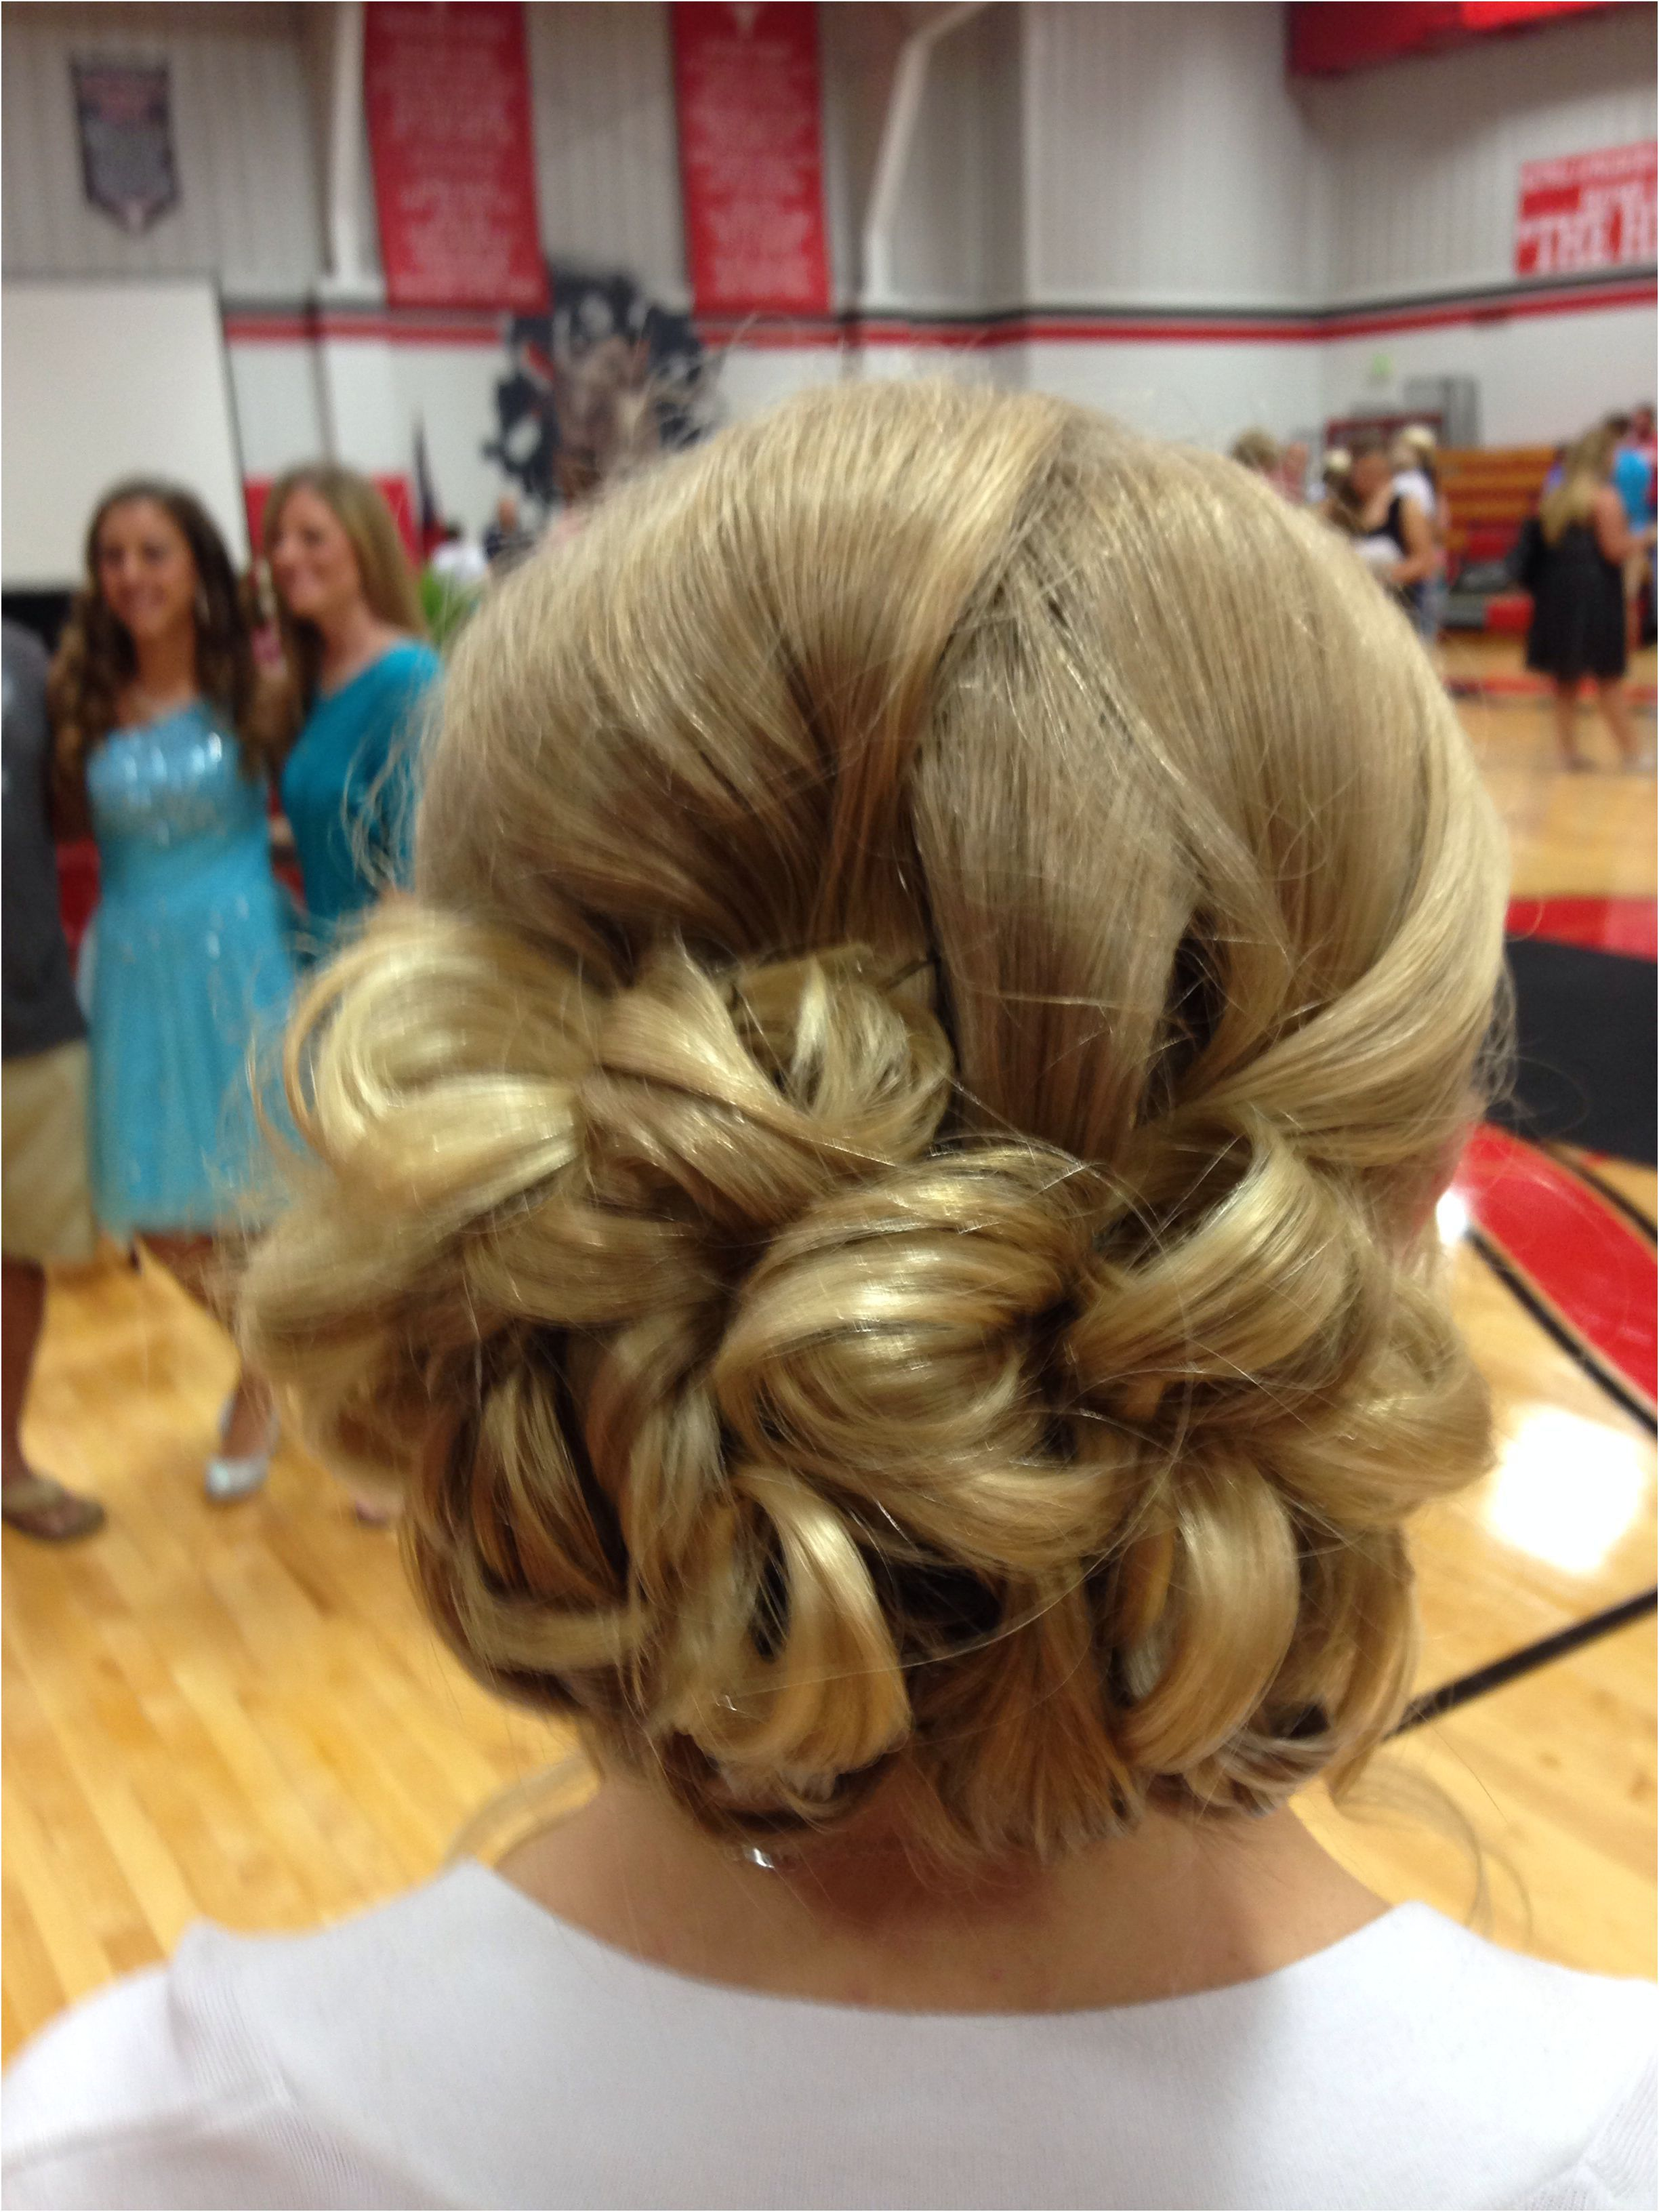 13 animated 8th grade prom hairstyles pictures | prom easy